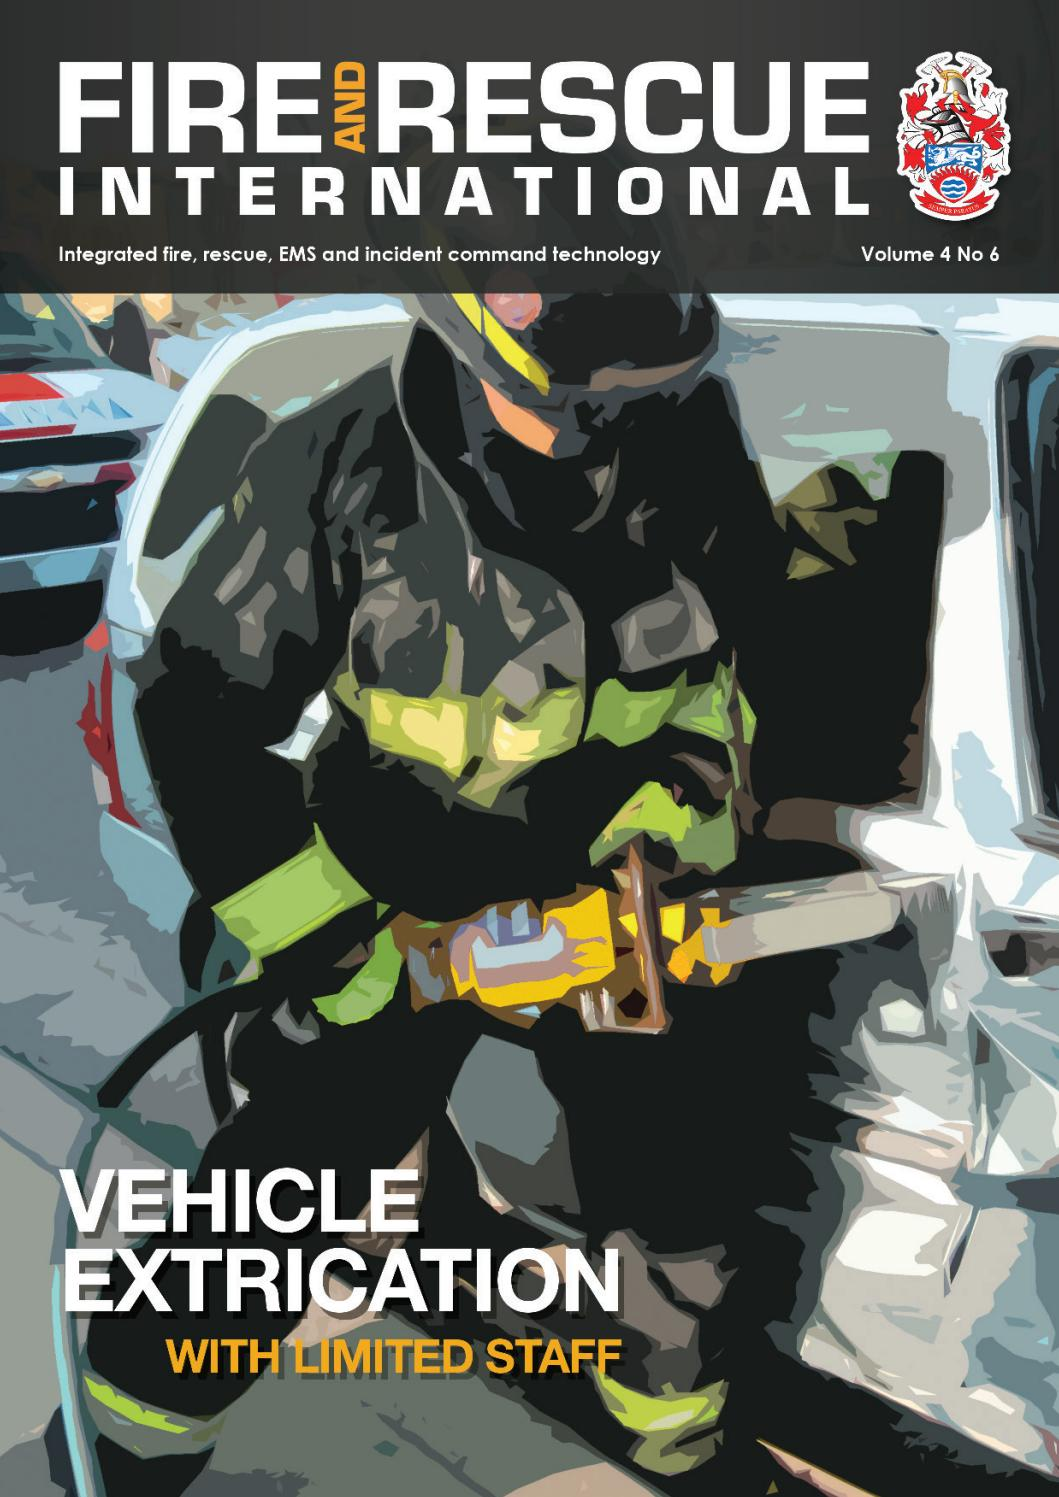 Fire and Rescue International Vol 4 No 6 by Fire and Rescue International -  issuu